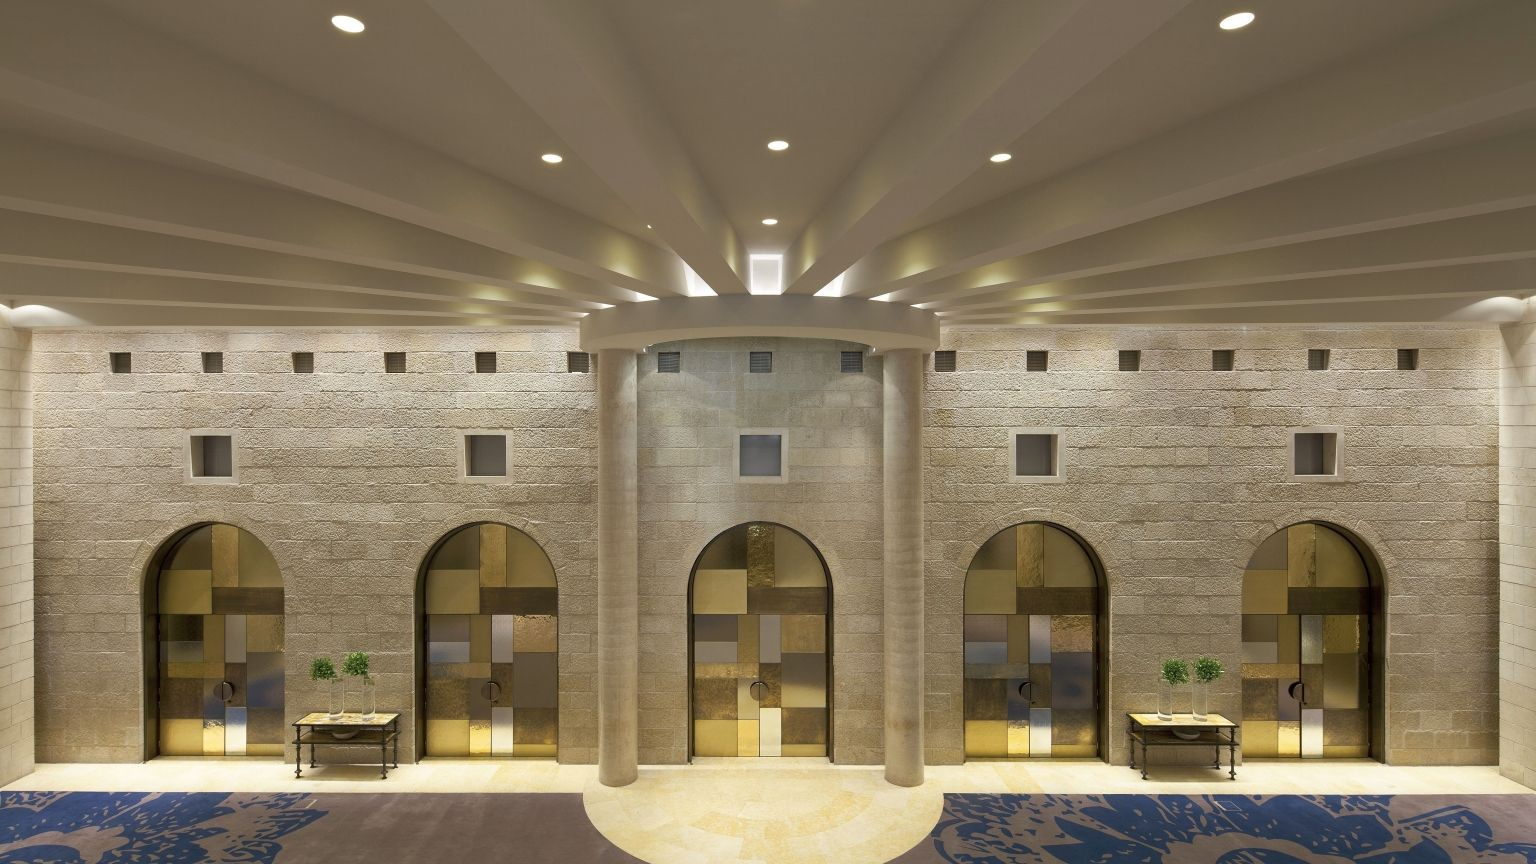 Foyer | David Citadel Hotel